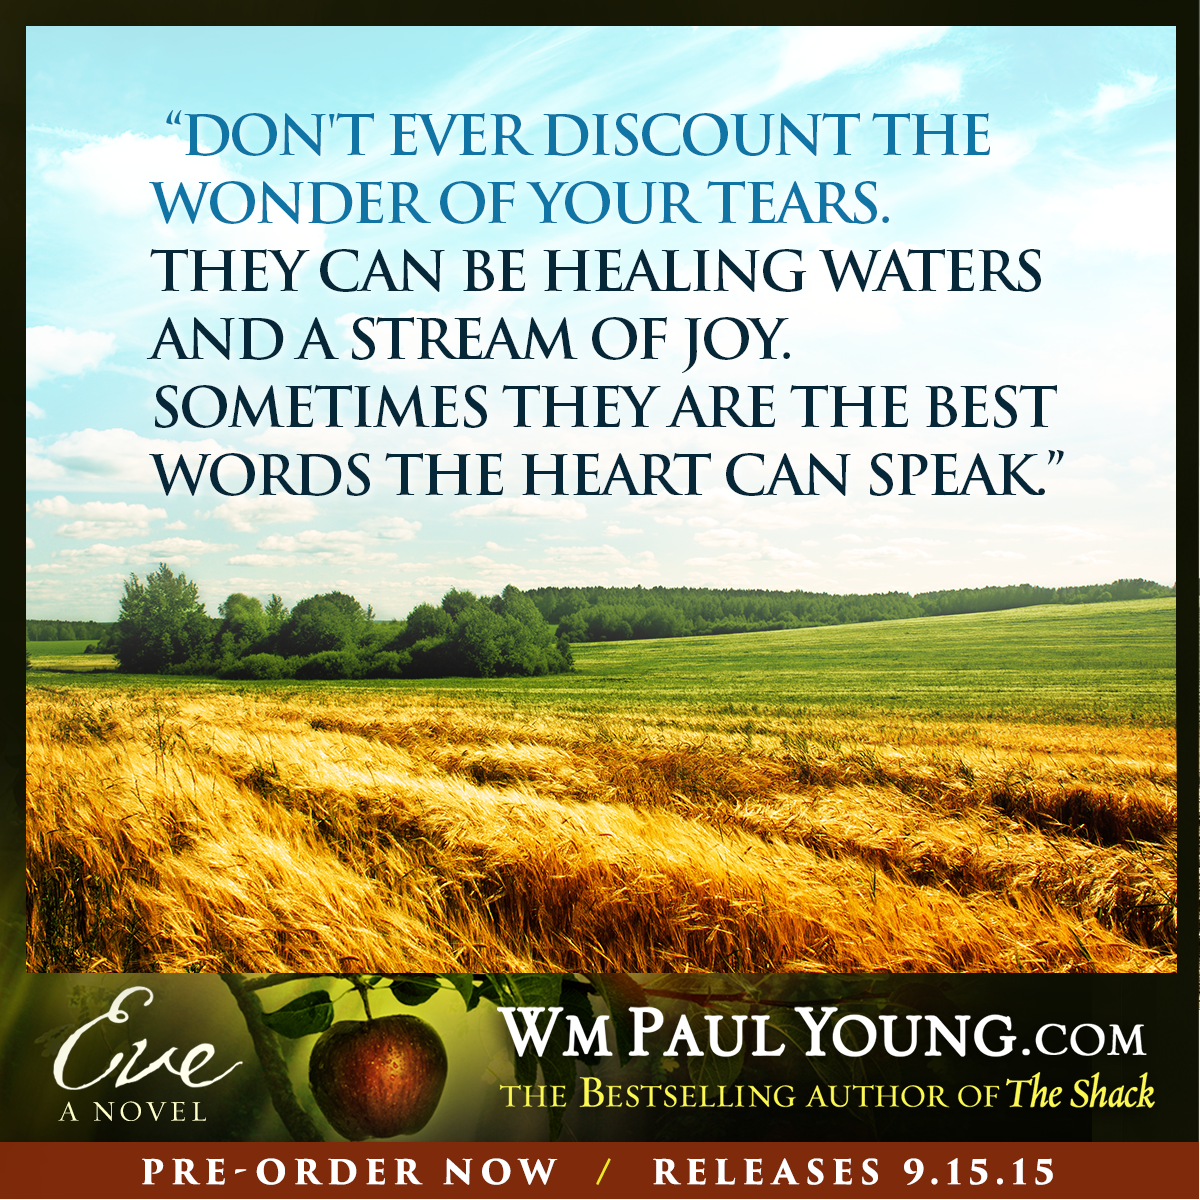 The Shack Quotes 5 Quotes From William Paul Young   Wm. Paul Young The Shack Quotes